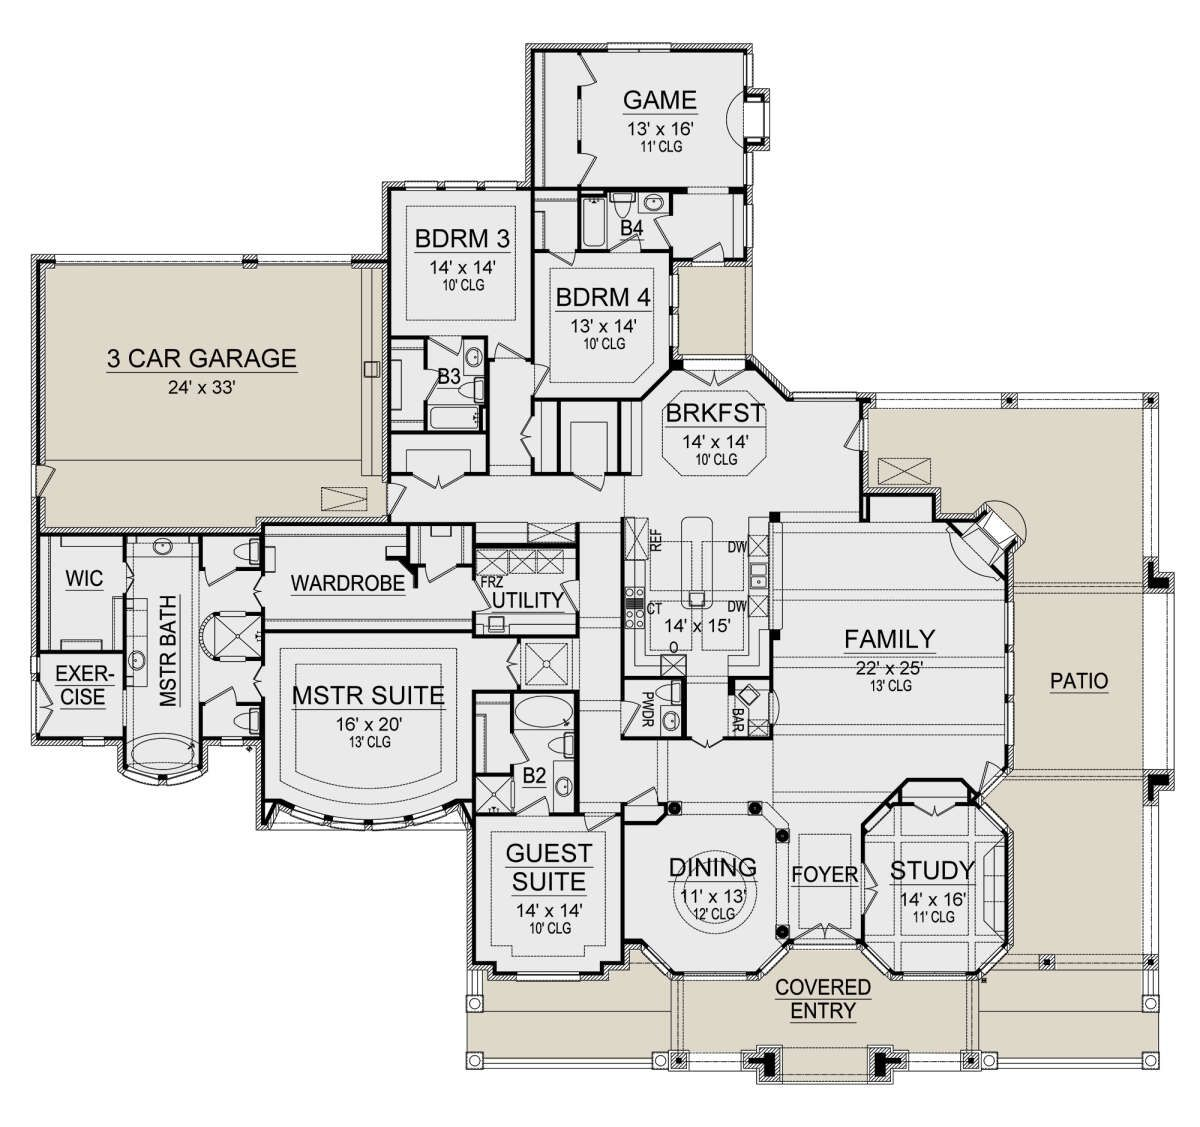 House Plan 5445 00403 French Country Plan 4 891 Square Feet 4 Bedrooms 4 5 Bathrooms In 2020 Cabin House Plans House Plans House Floor Plans